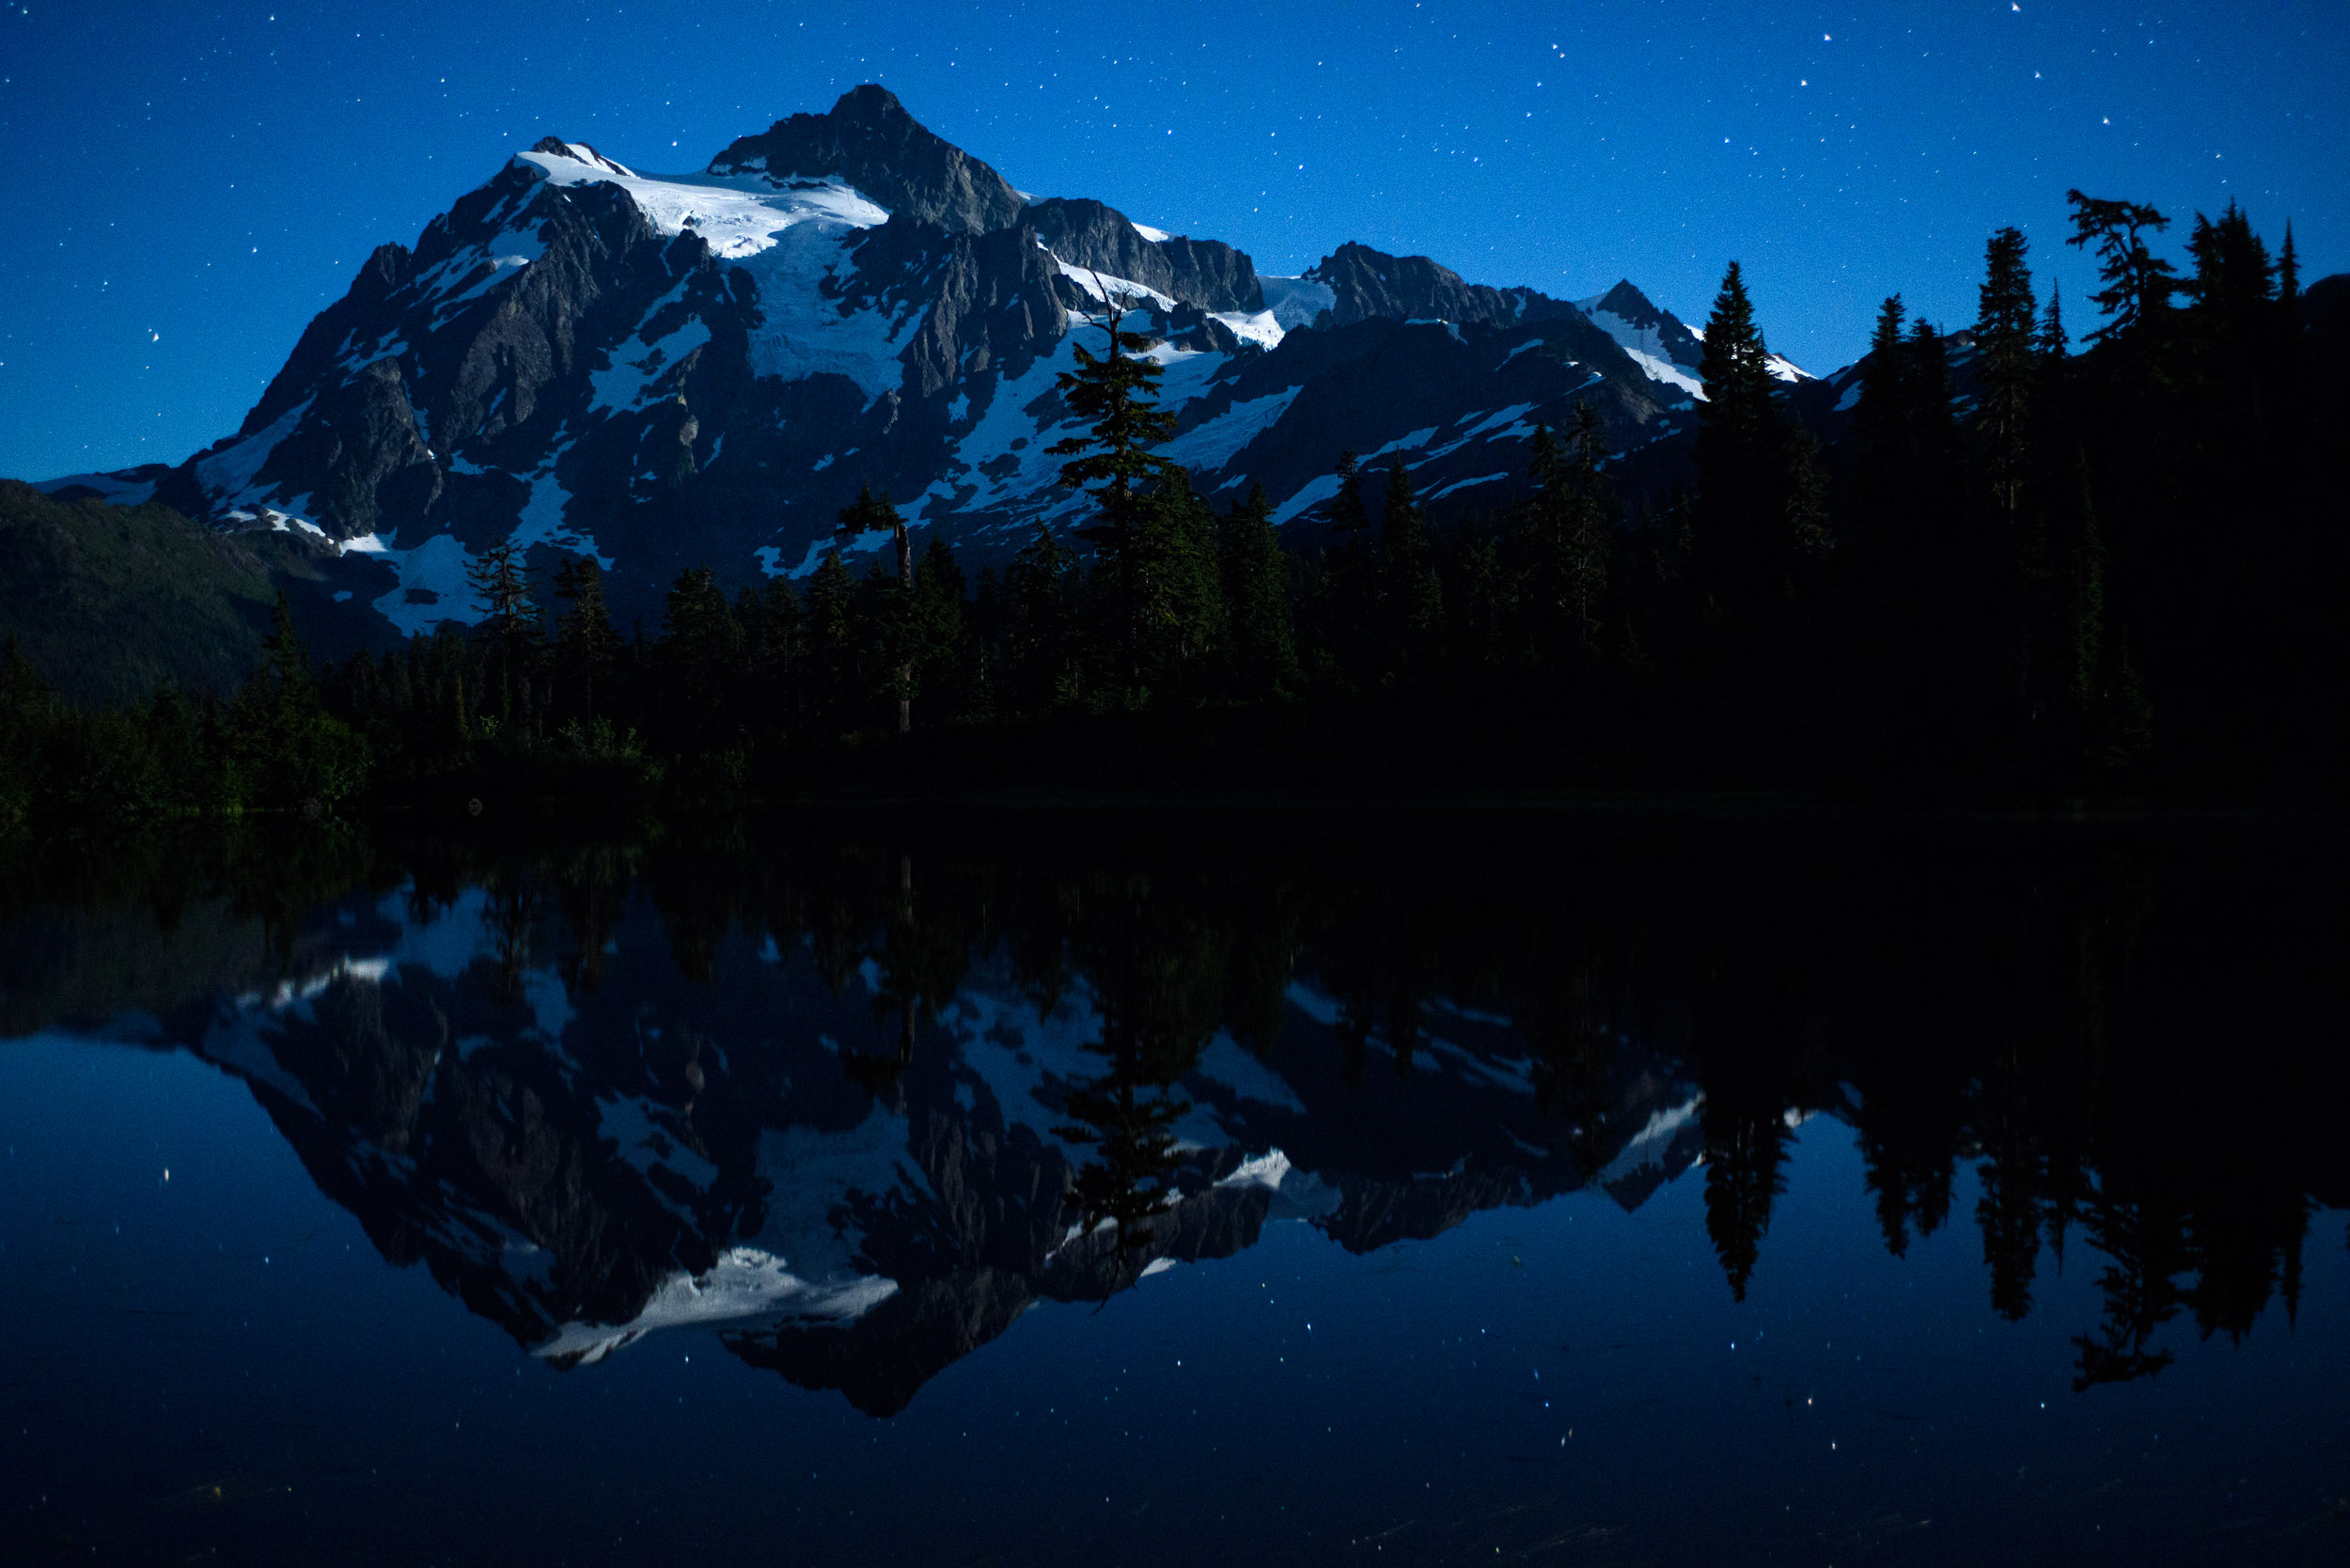 <p><strong>North Cascades National Park (Waitlist Only)</strong><br/> August 2-7, 2020</p>